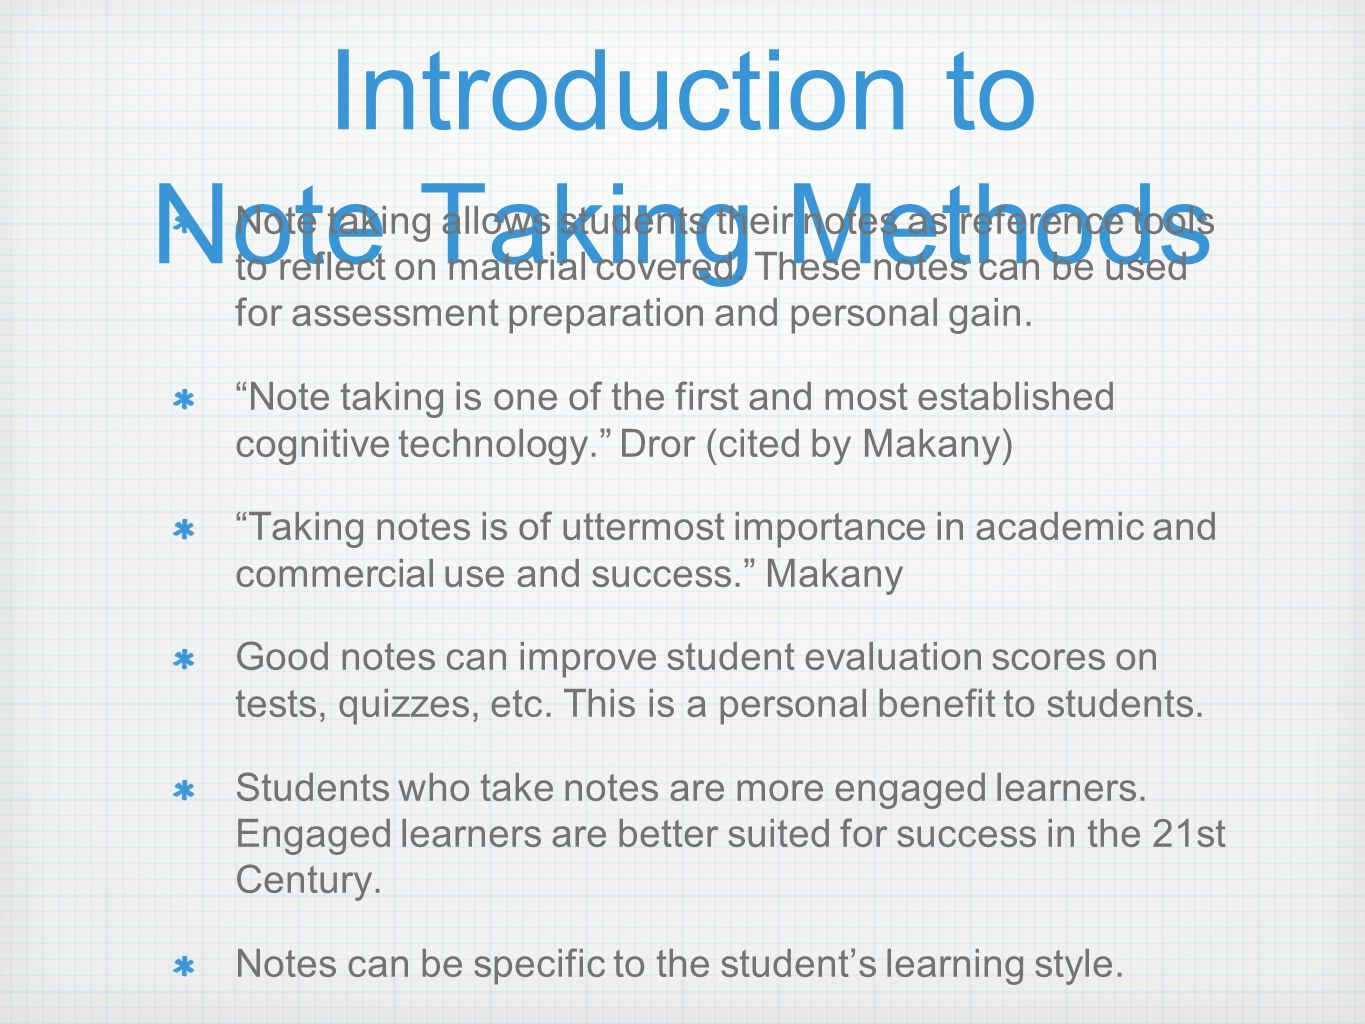 notes on the importance of first Many times note taking is one of the most difficult things for a student to do  effectively it can be difficult for students to know what to write down, what is  important or pertinent information, or how to structure  hours of first taking the  notes.